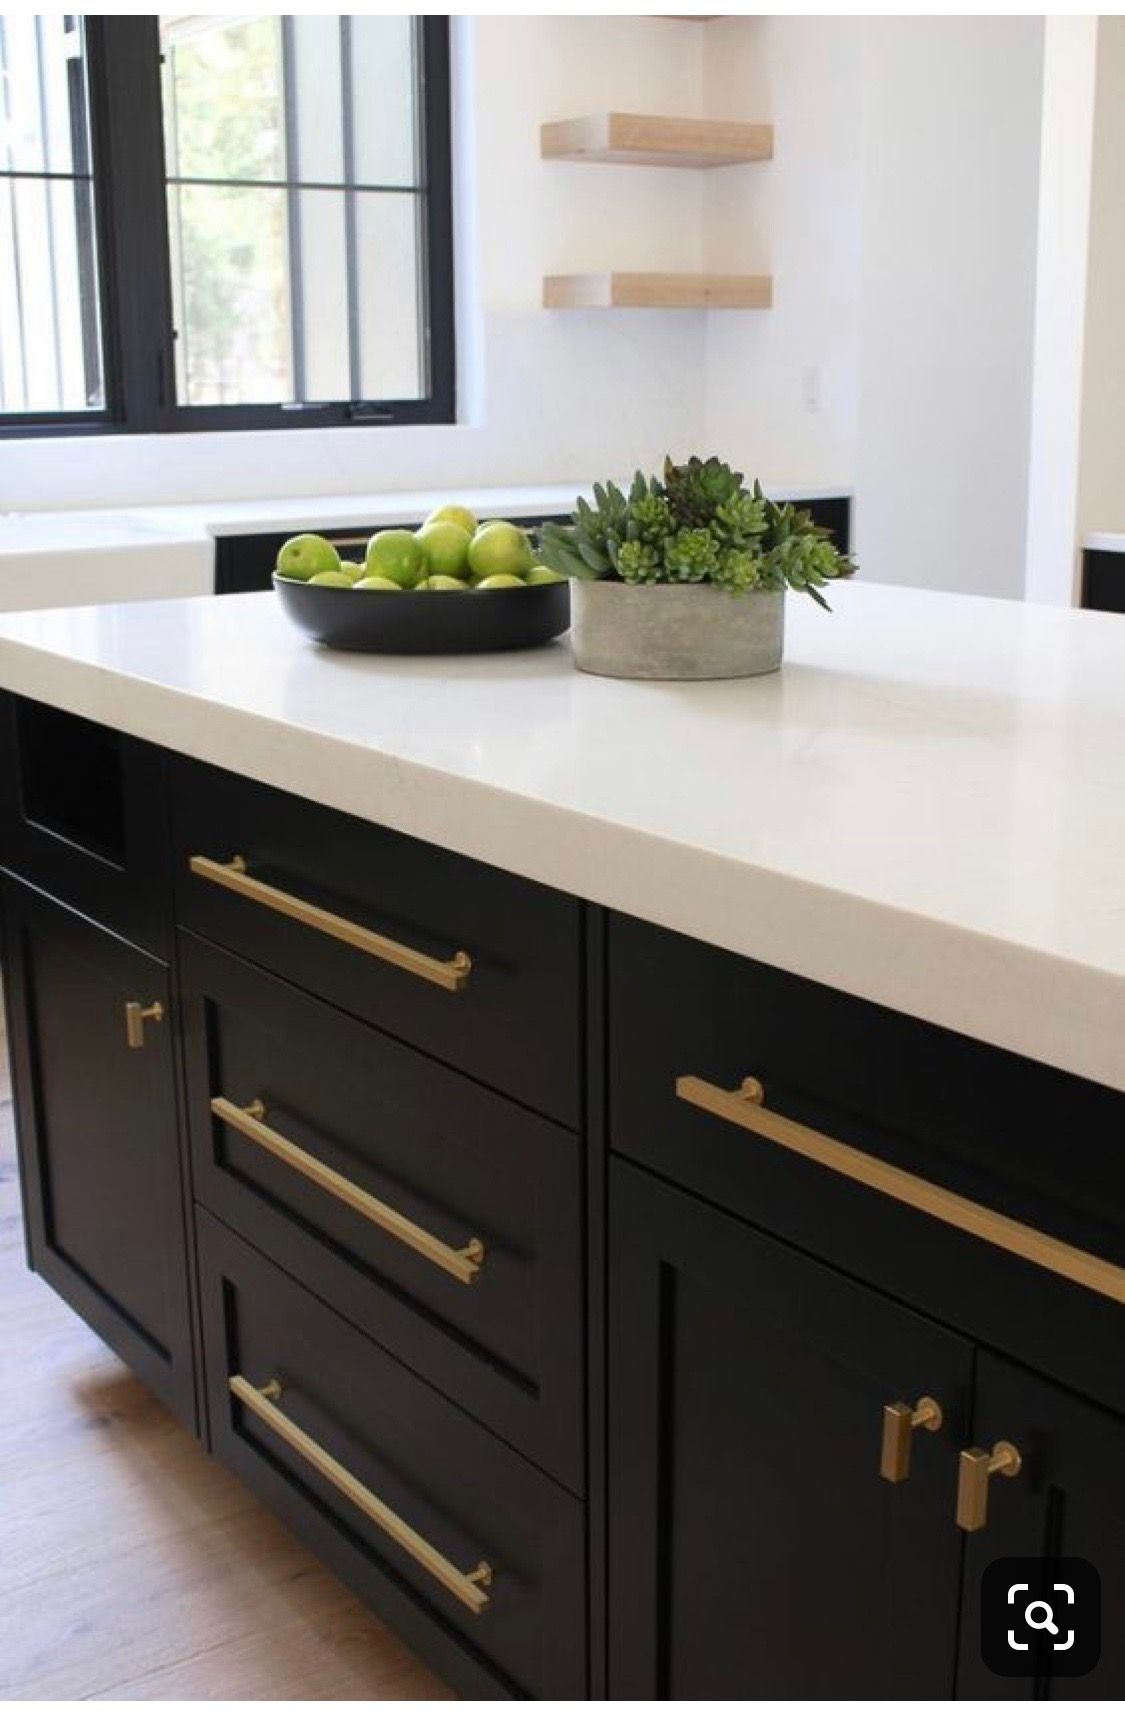 Kitchens image by Woods Kitchen inspirations